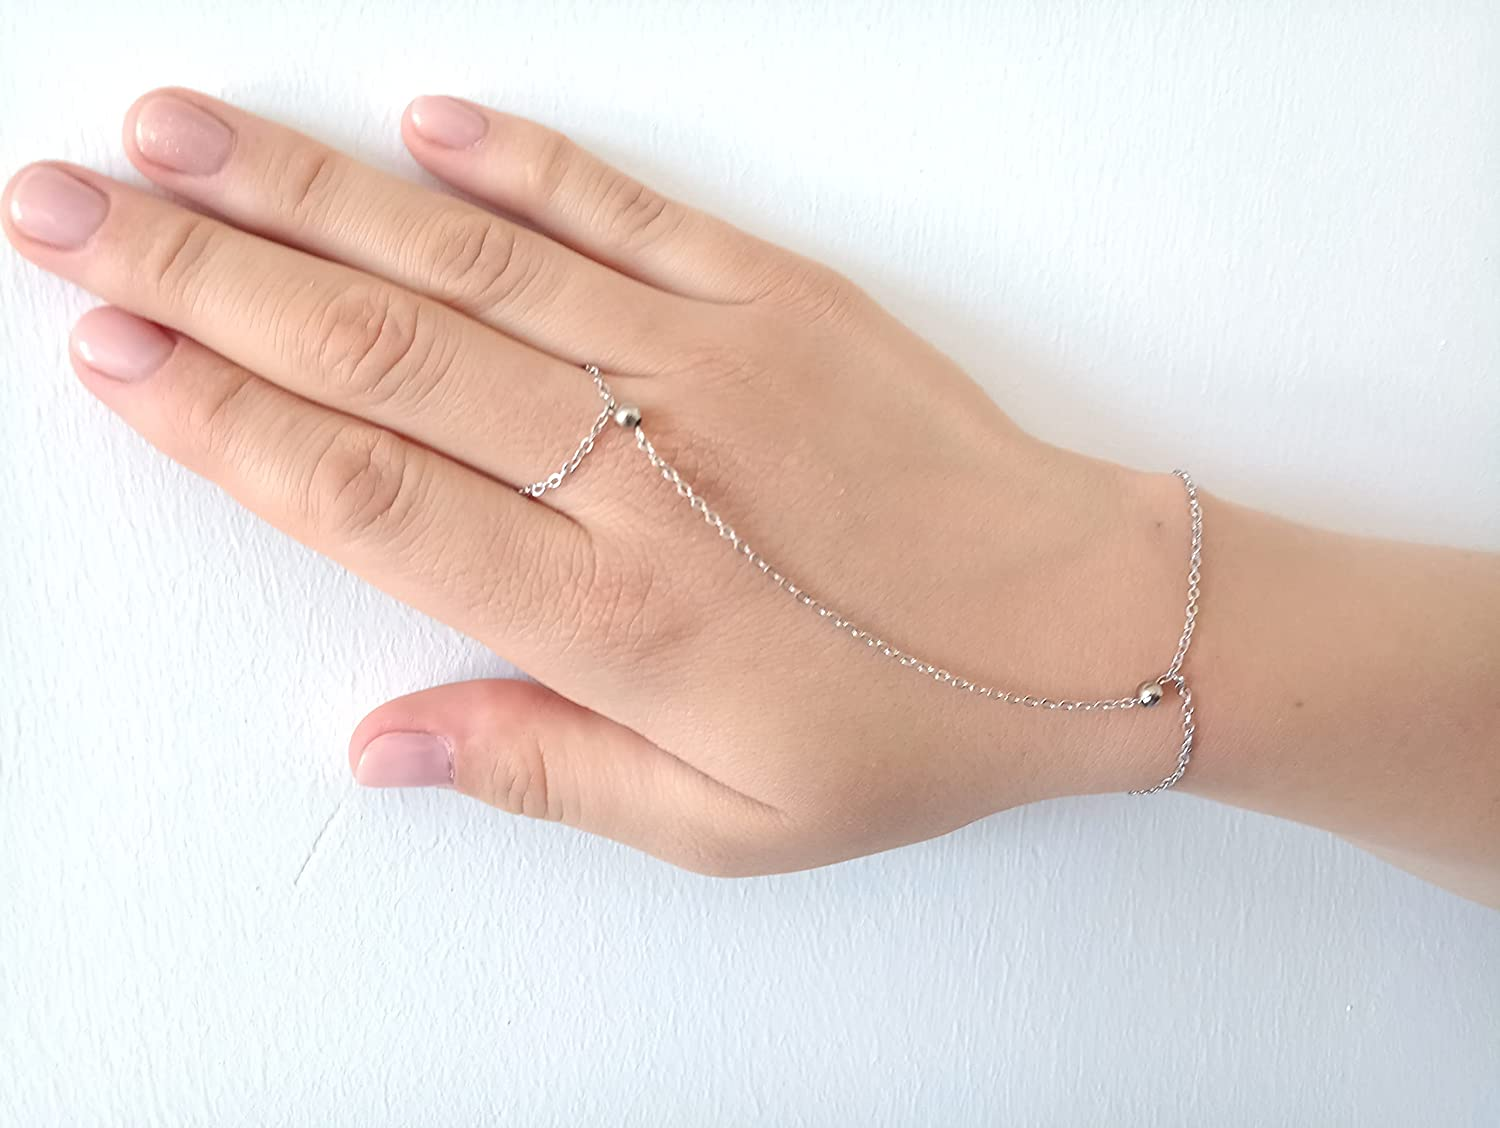 Simple Chain bracelet Minimalist Tucson Mall Safety and trust Bracelet Ring Attached